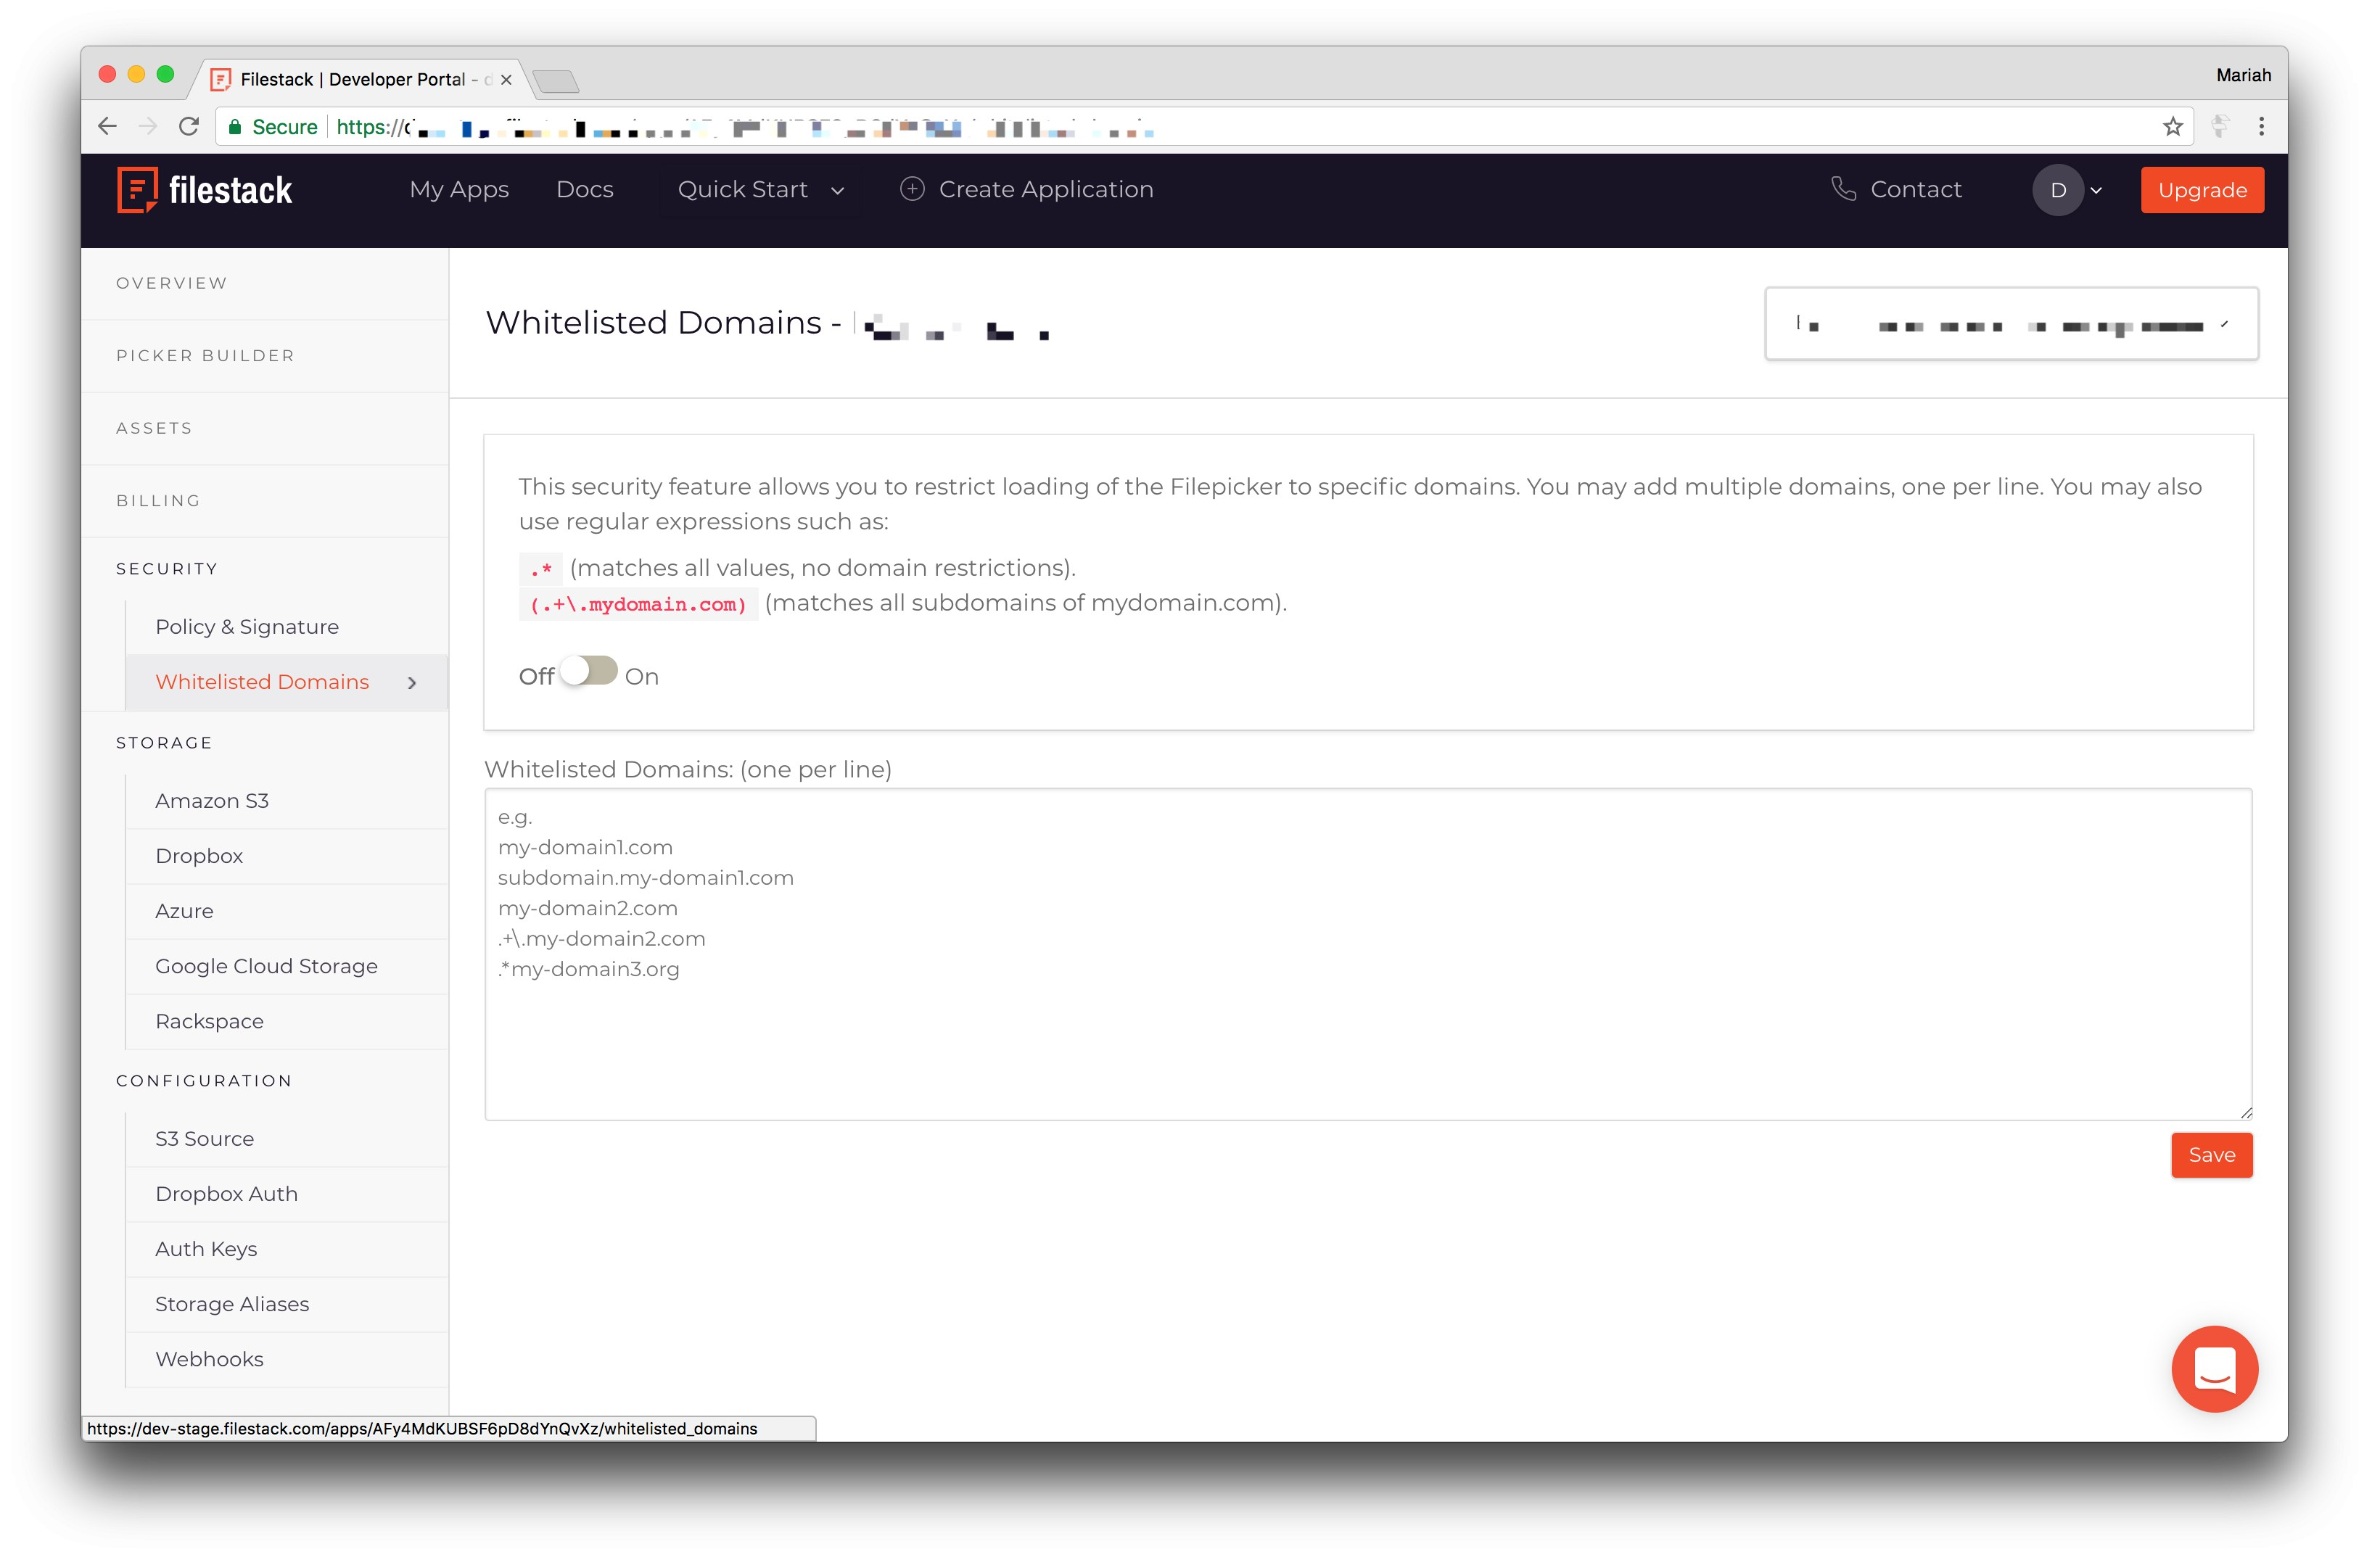 Screenshot showing Filestack Developer Portal Whitelist Domains